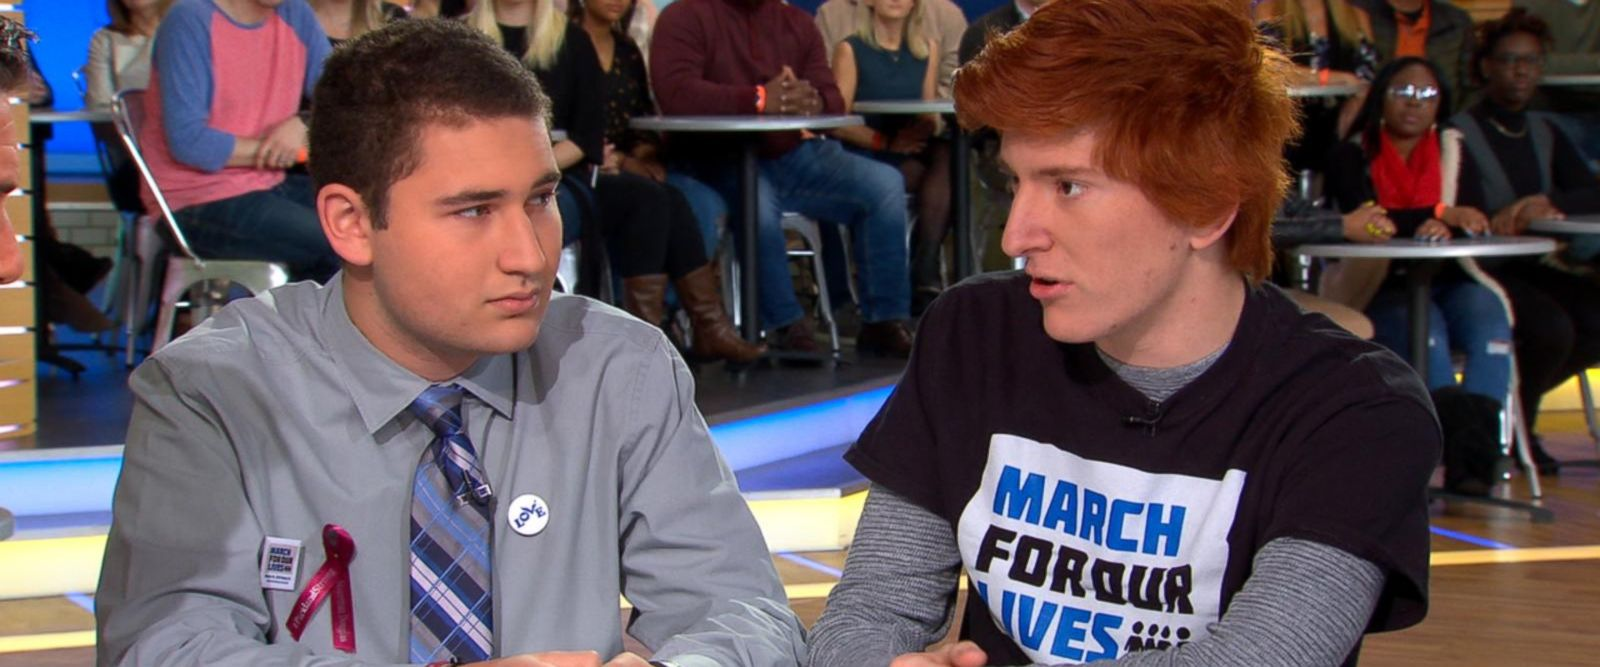 VIDEO: Florida school shooting survivors speak out ahead of March for Our Lives